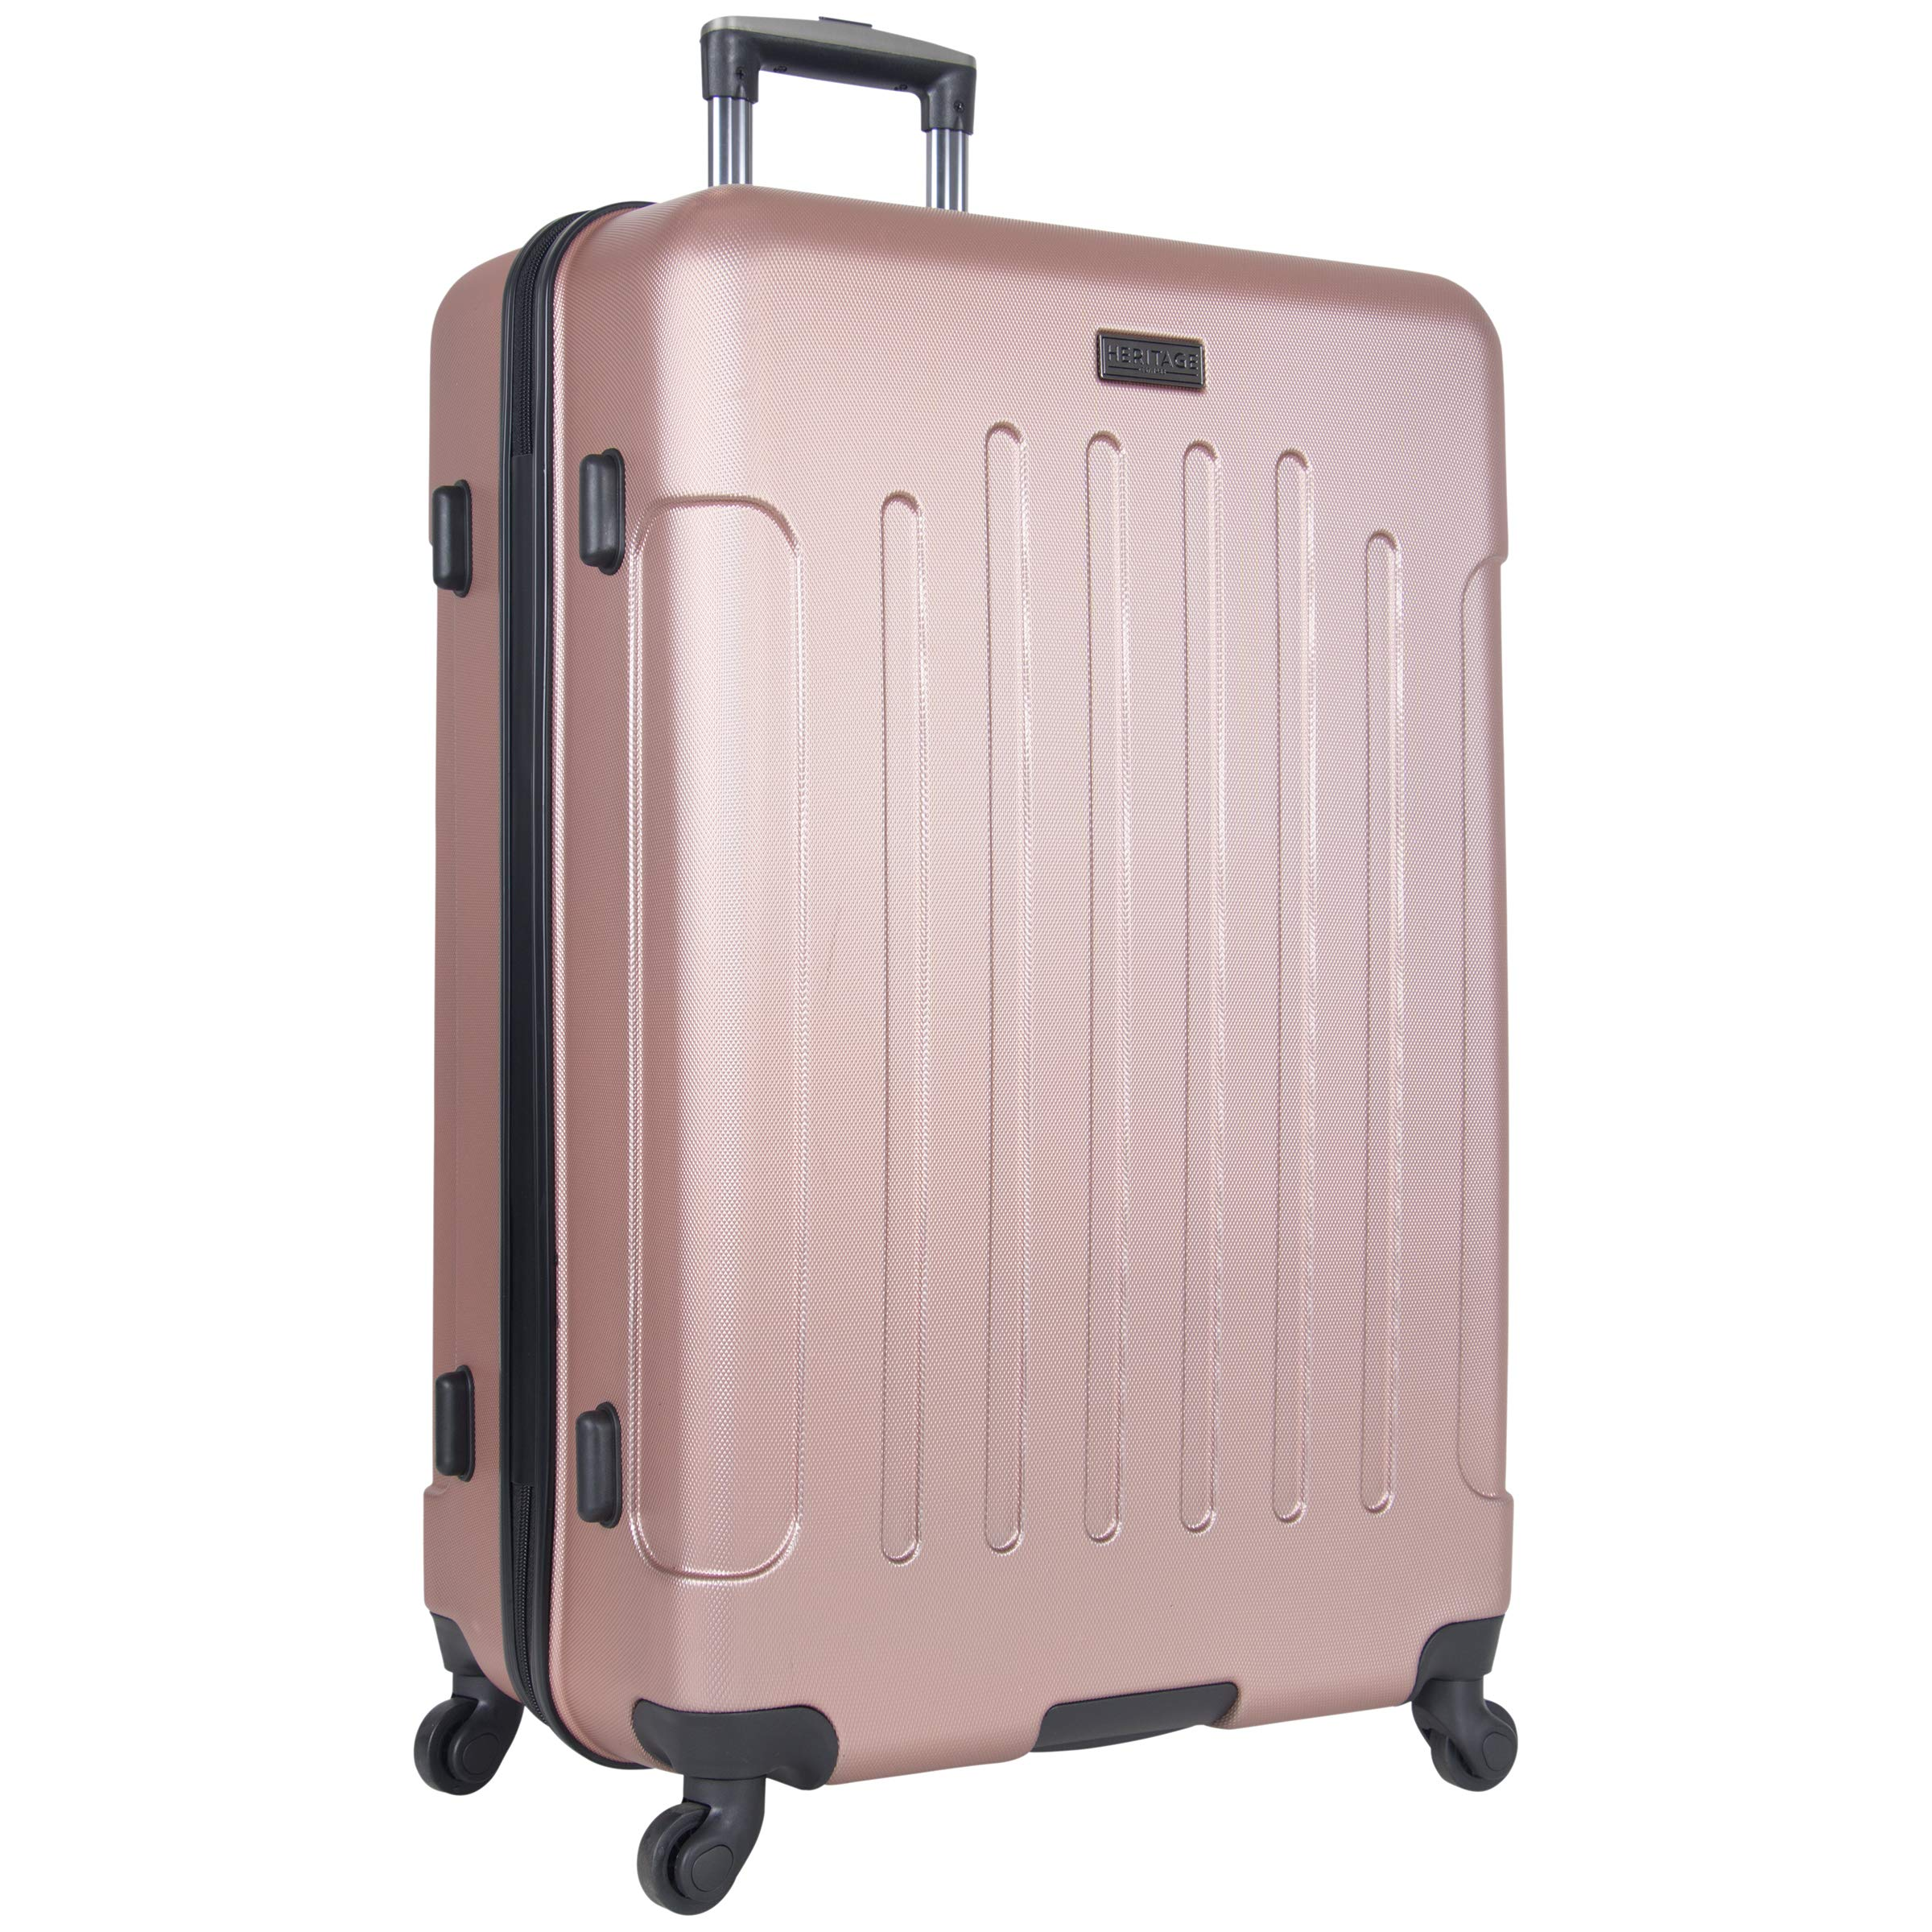 Heritage Travelware Lincoln Park 29'' Lightweight Hardside 4-Wheel Spinner Checked Luggage, Metallic Rose Gold